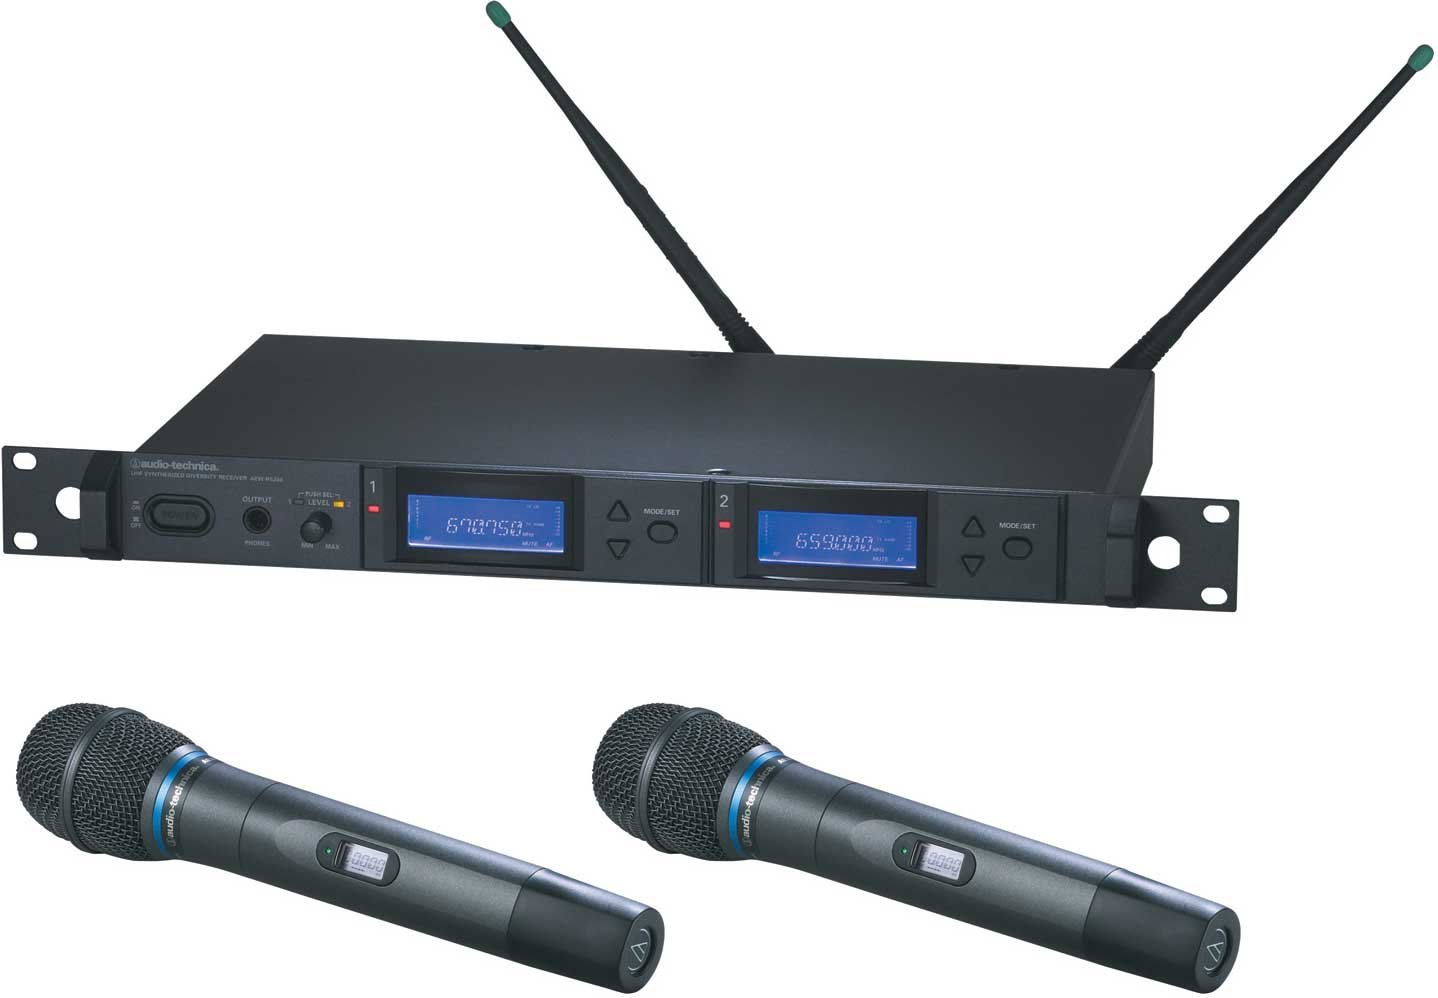 Dual Wireless Microphone Handheld System with 2 x AEW-T5400a Cardioid Condenser Mics, UHF Band C: 541.500 MHz to 566.375 MHz